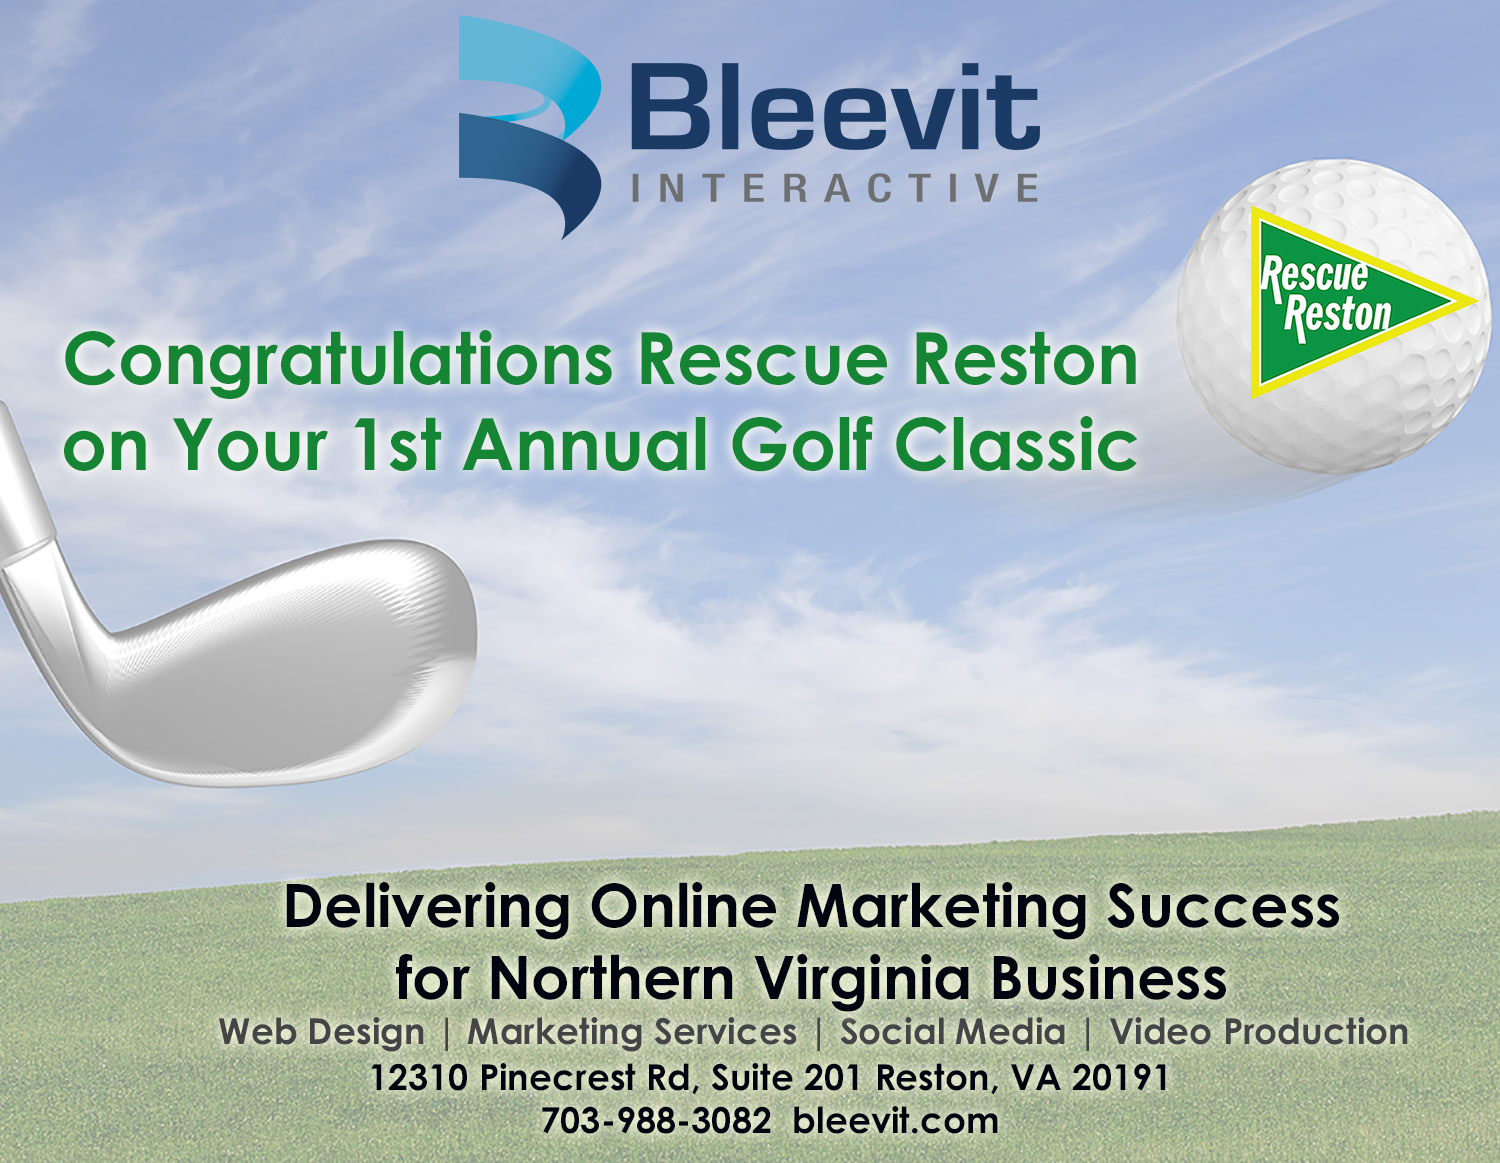 Bleevit Interactive Tee & Marketing Sponsor